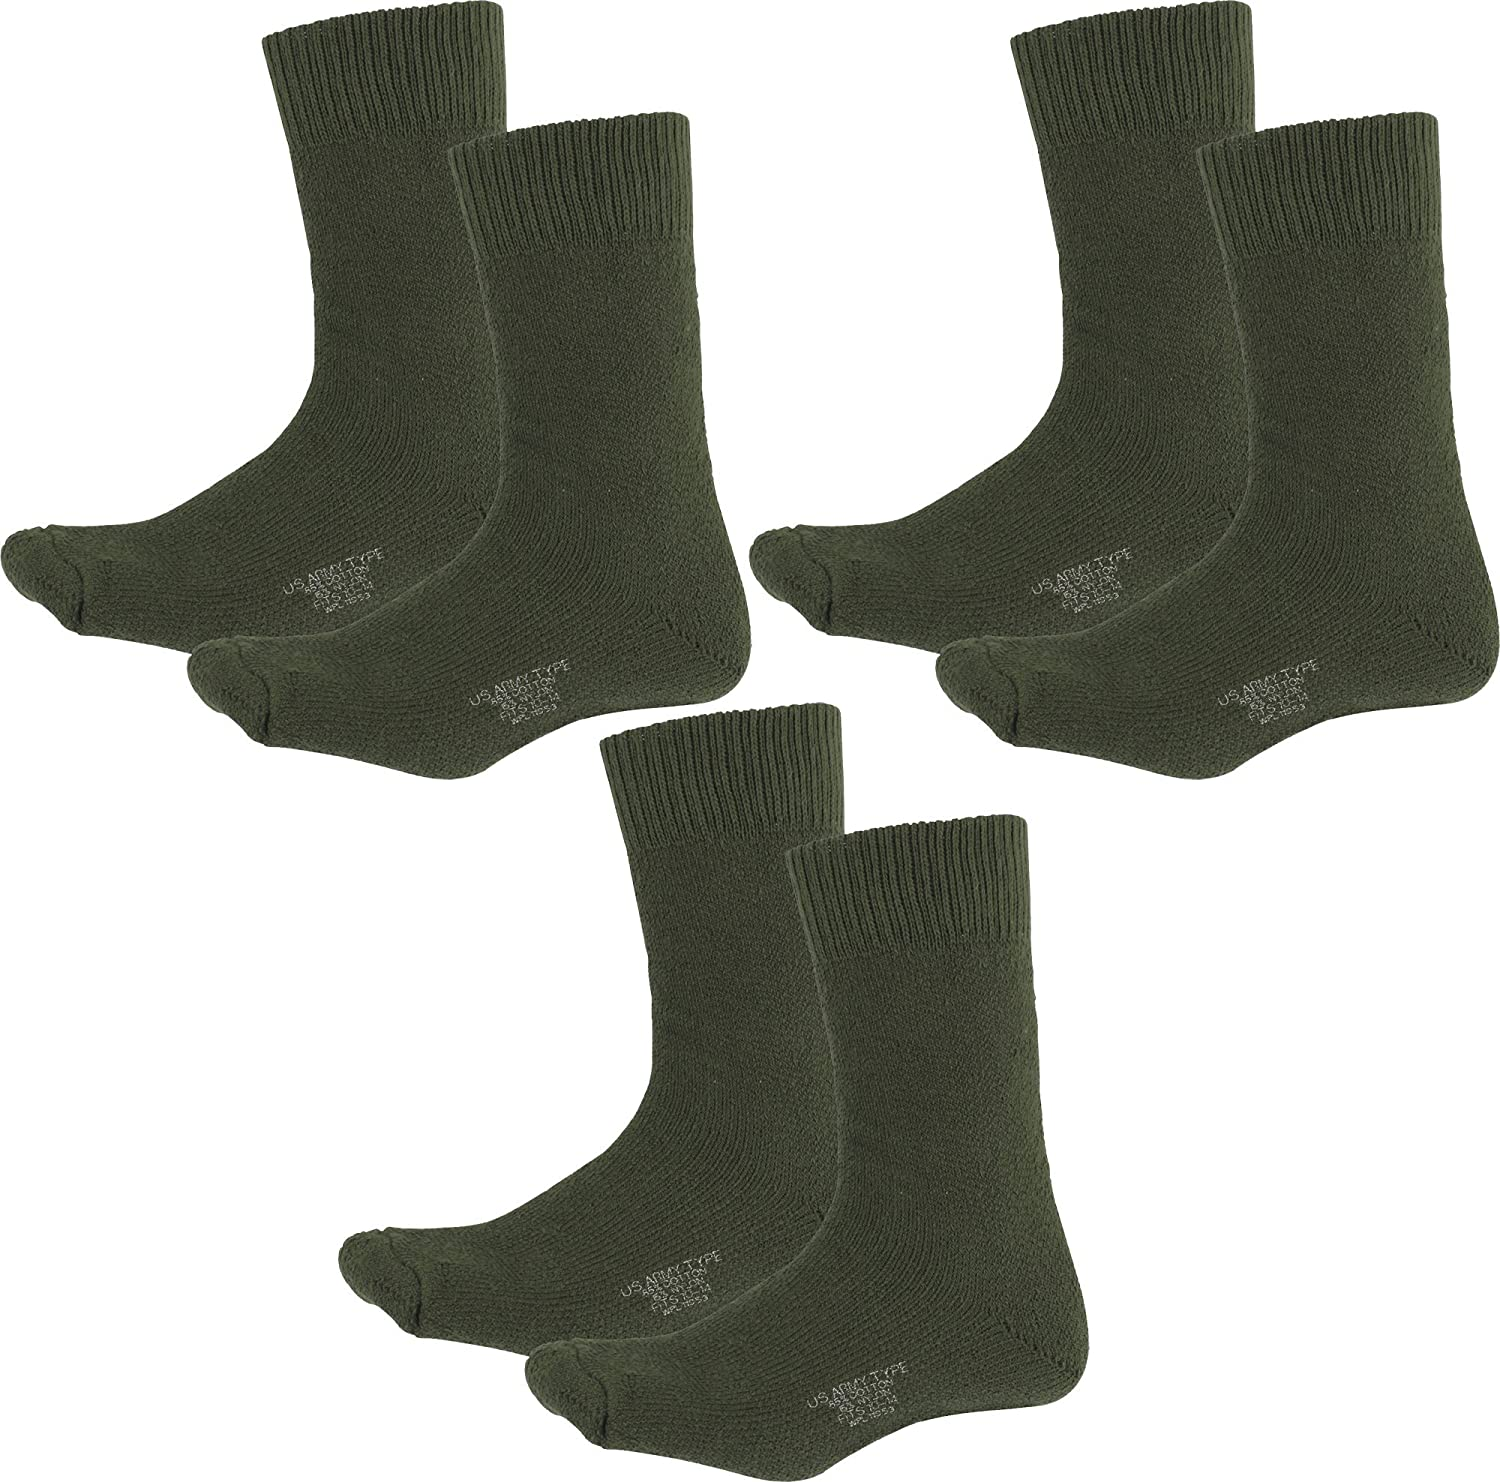 6e7533526 Amazon.com: Heavyweight Nylon/Cotton US Army Military Thick Thermal Boot  Socks - 3 PACK (Black): Clothing